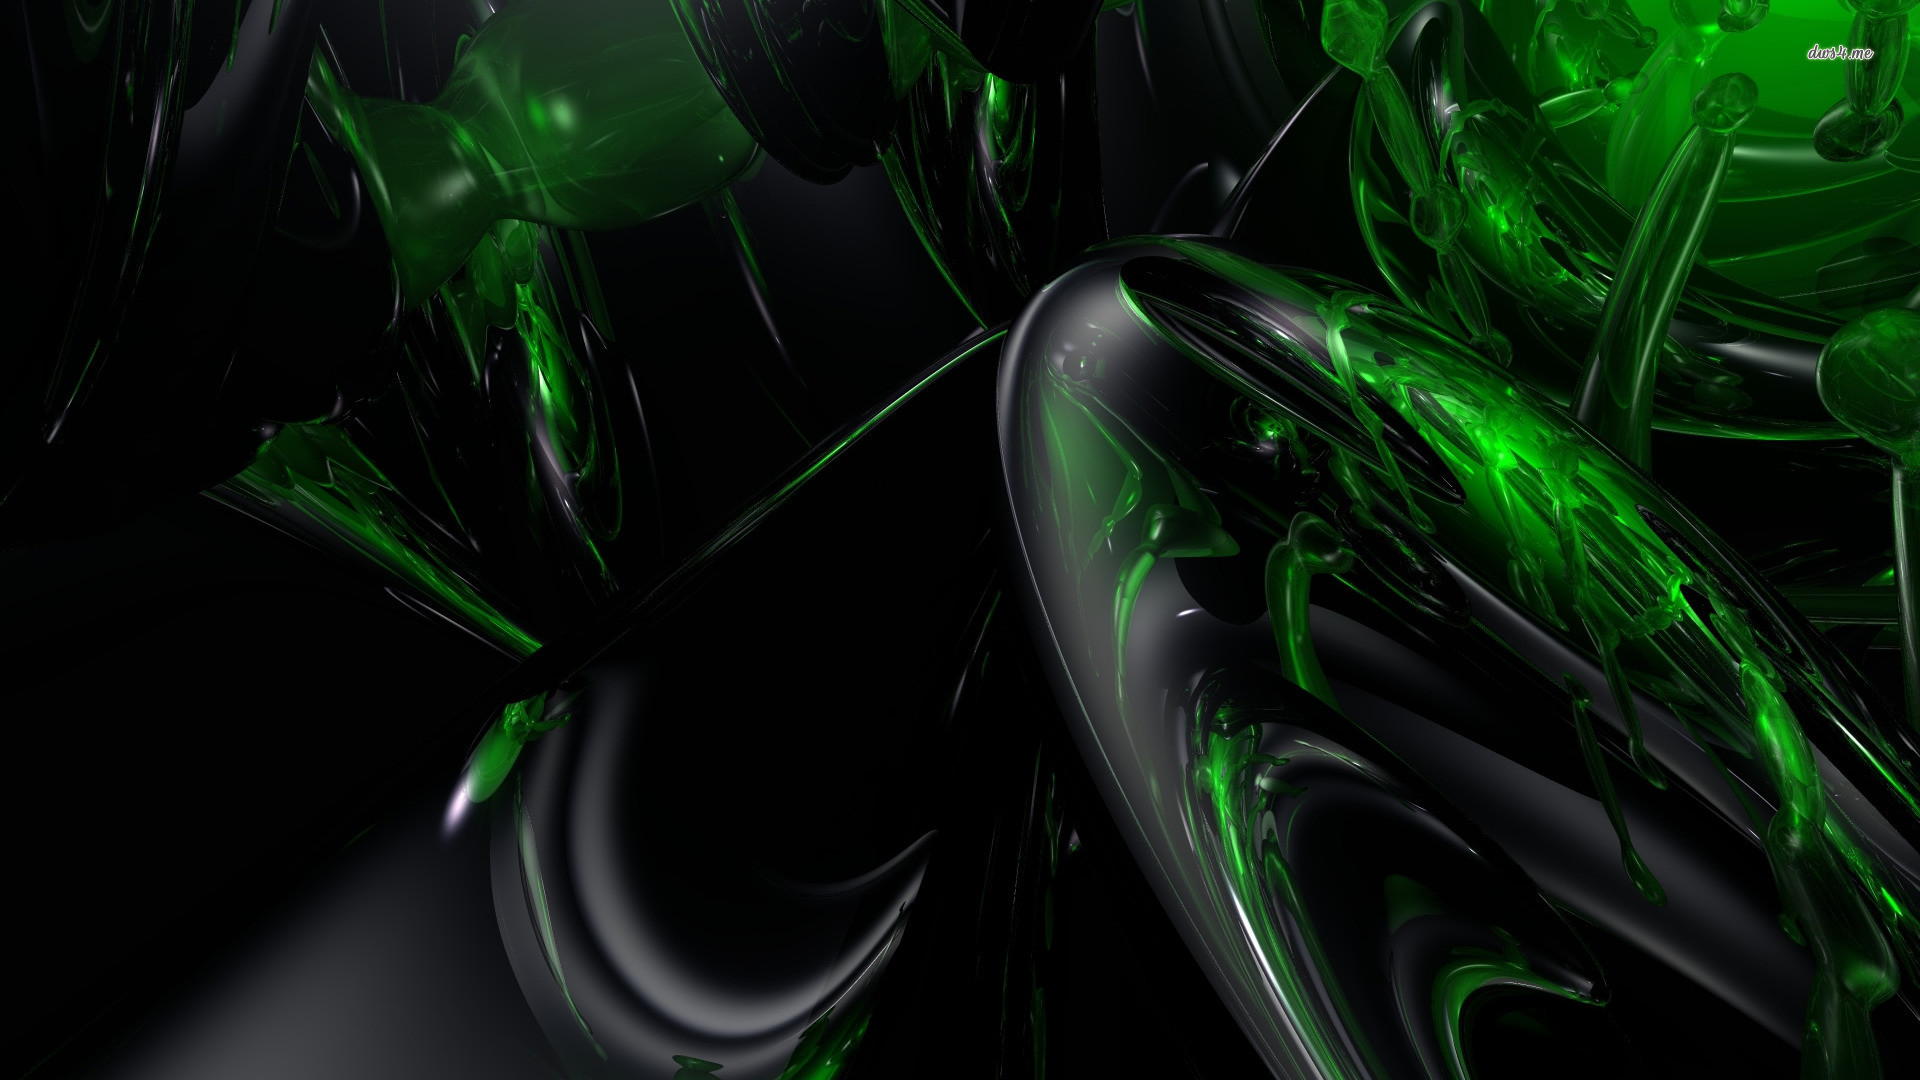 Dark Green Background Wallpaper 69 Images